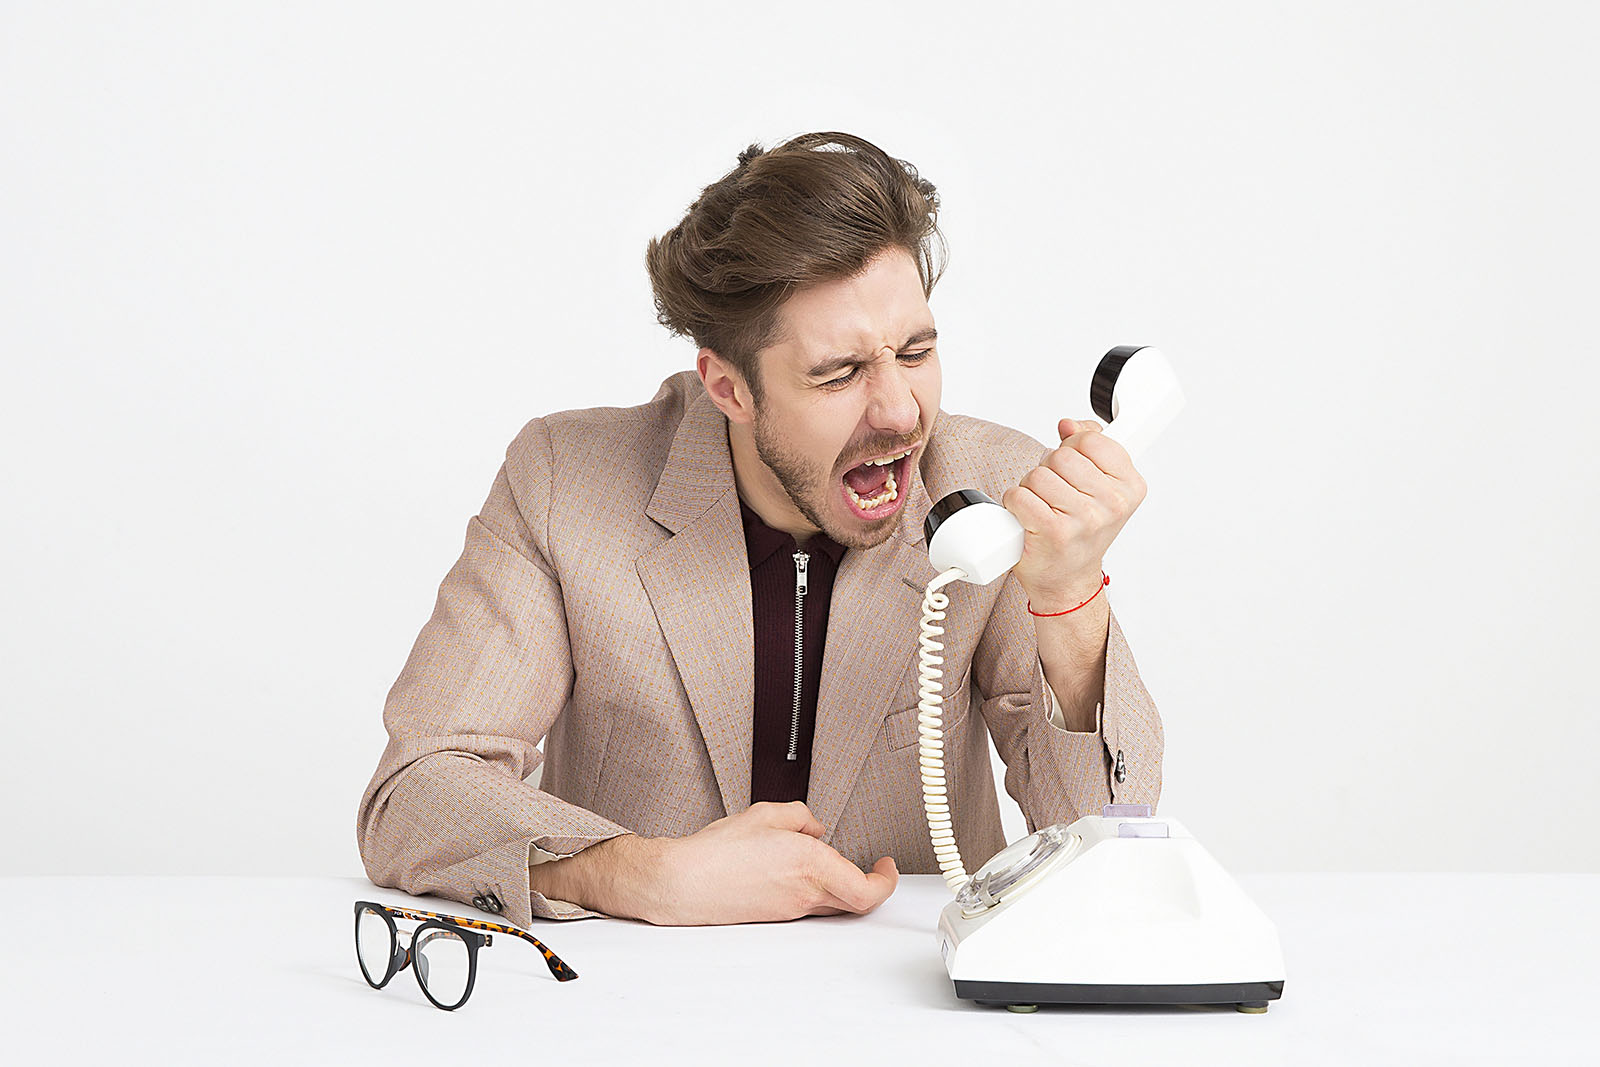 Angry man shouting through the handset of a traditional phone.